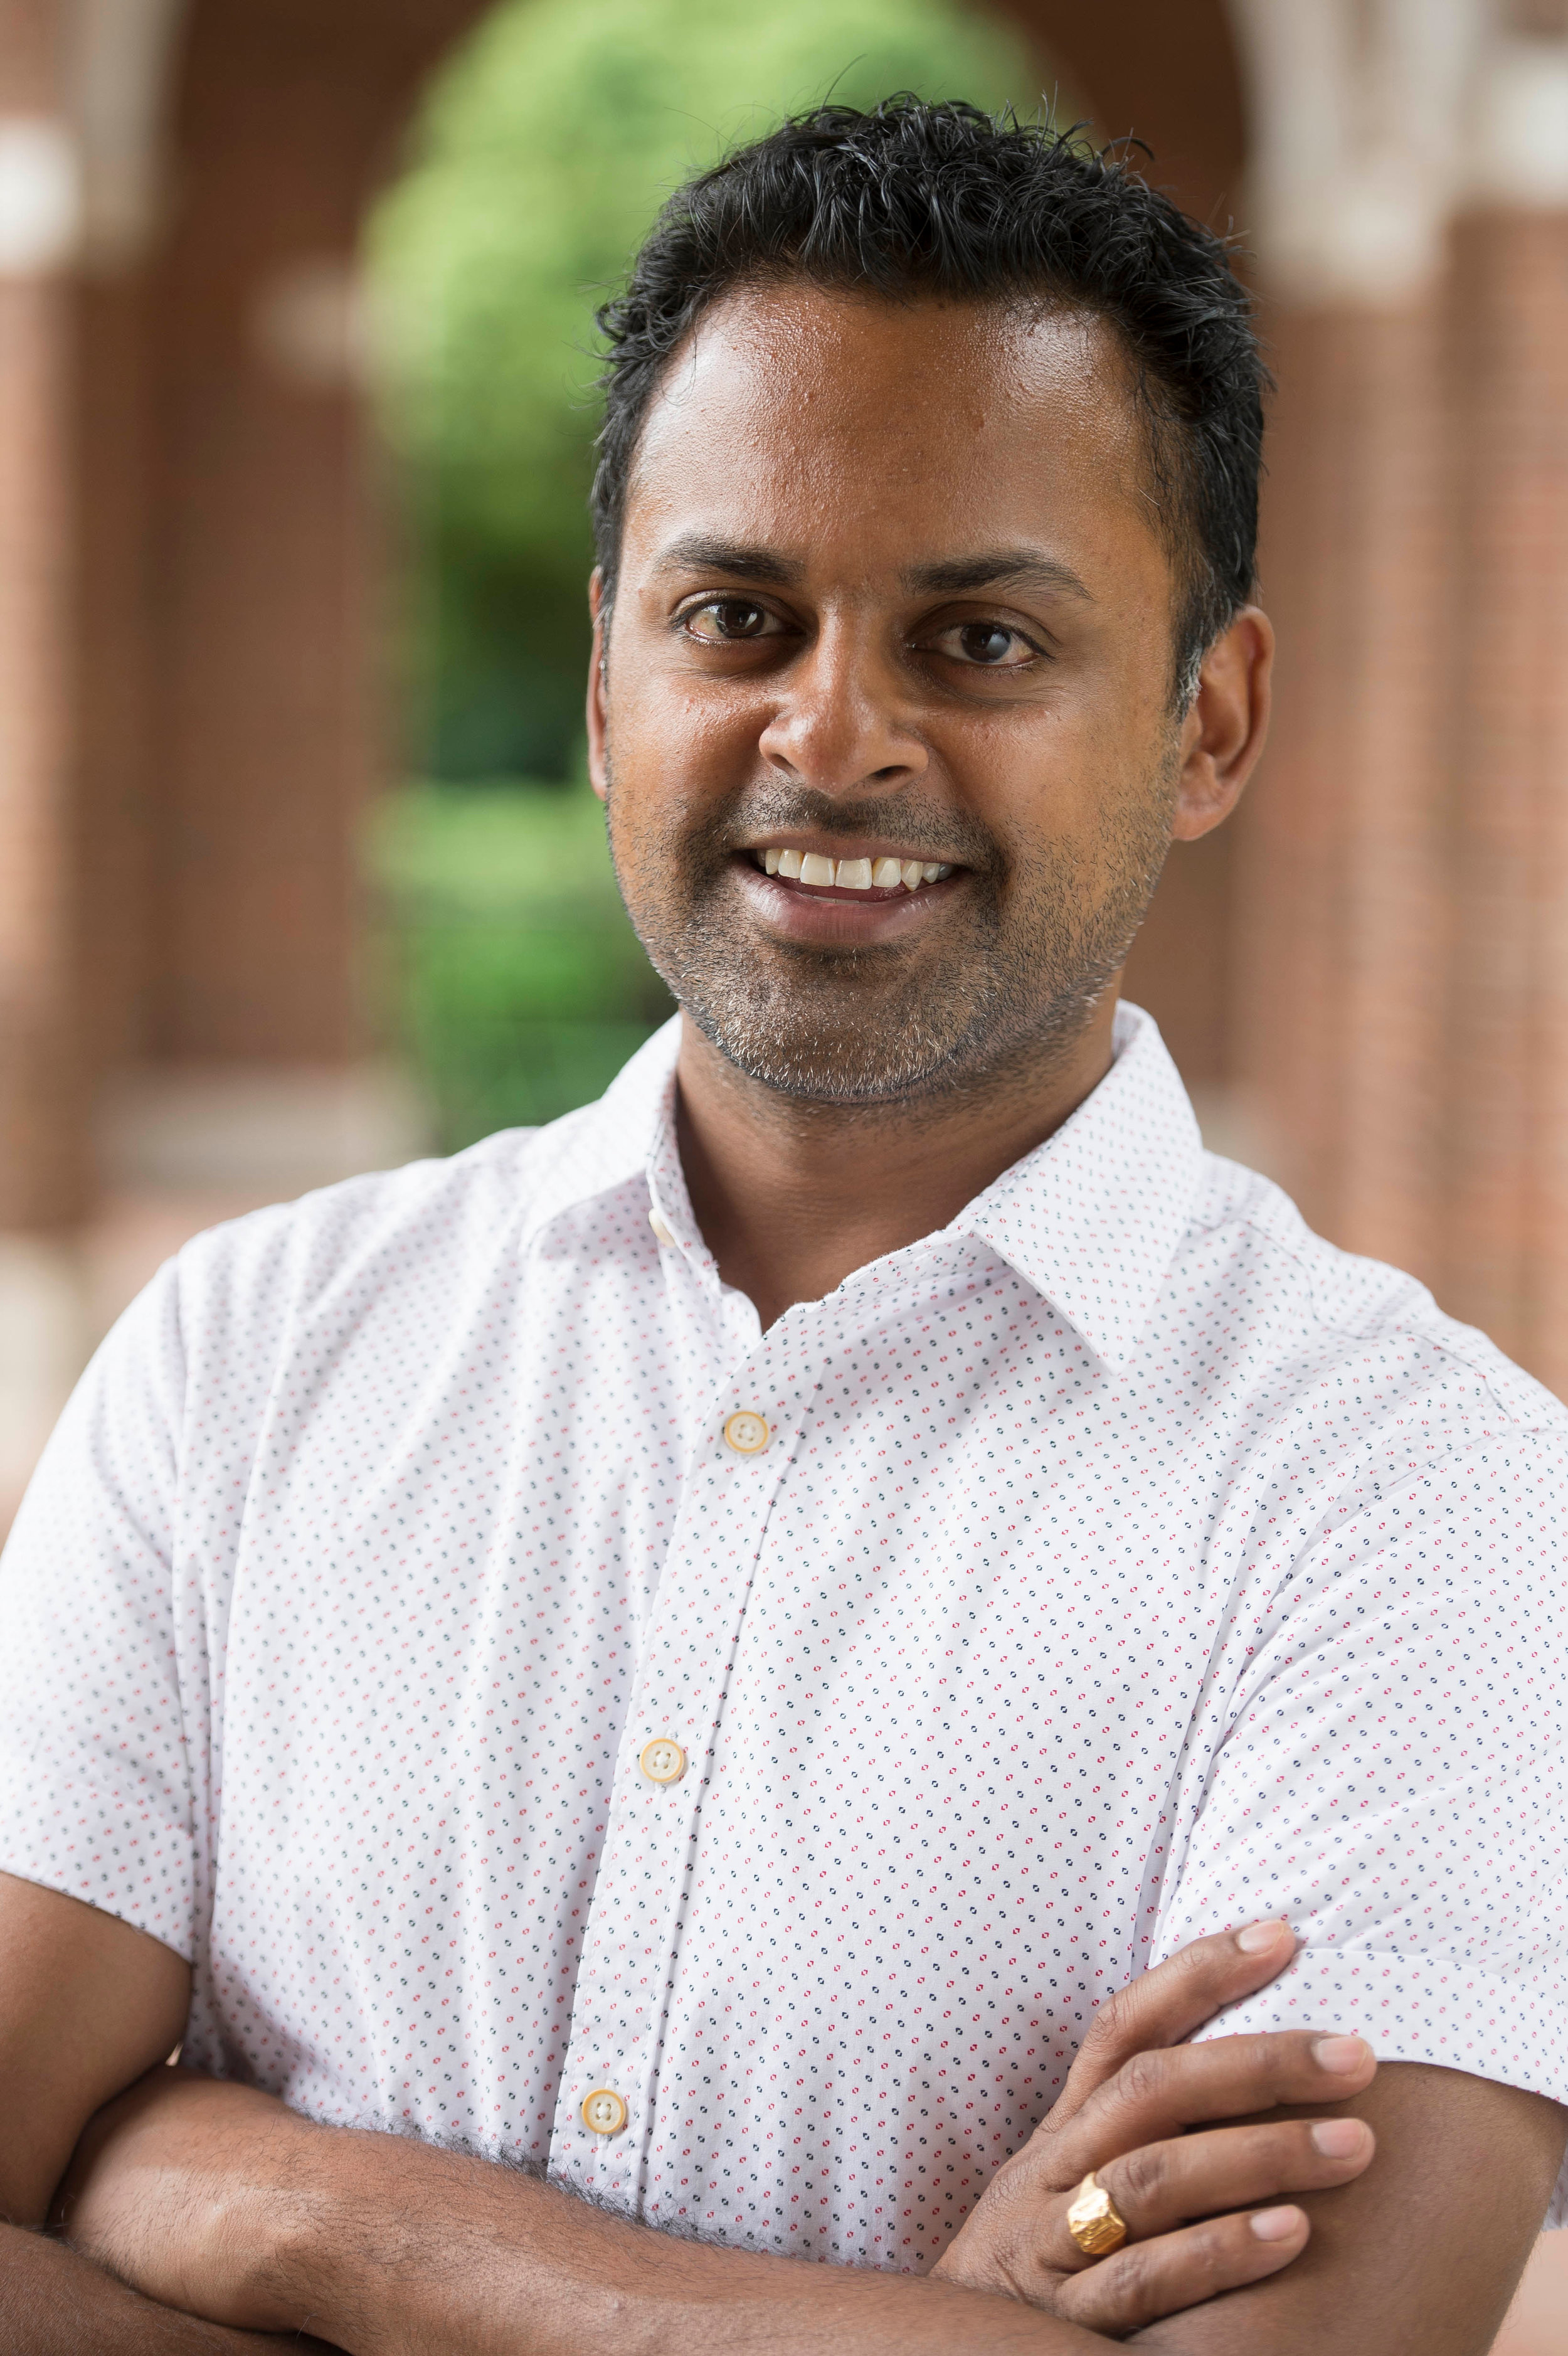 Kishore Kuchibhotla, PhD   Assistant Professor kkuchib1@jhu.edu   Kishore grew up in Connecticut before going to  MIT  where he majored in  Physics  and  Brain/Cognitive Science  and minored in  Political Science . He earned his PhD in  Biophysics  at  Harvard University  with Drs.  Brian Bacskai and  Bradley Hyman . He then did a postdoc with  Dr. Robert Froemke  at NYU. In his spare time, Kishore is a bit of a political junkie having worked in Washington, DC as a  policy analyst  and as a consultant at  McKinsey . He likes to play tennis, basketball, eat other people's cooking, and watch the latest season of [insert binge-worthy show here].